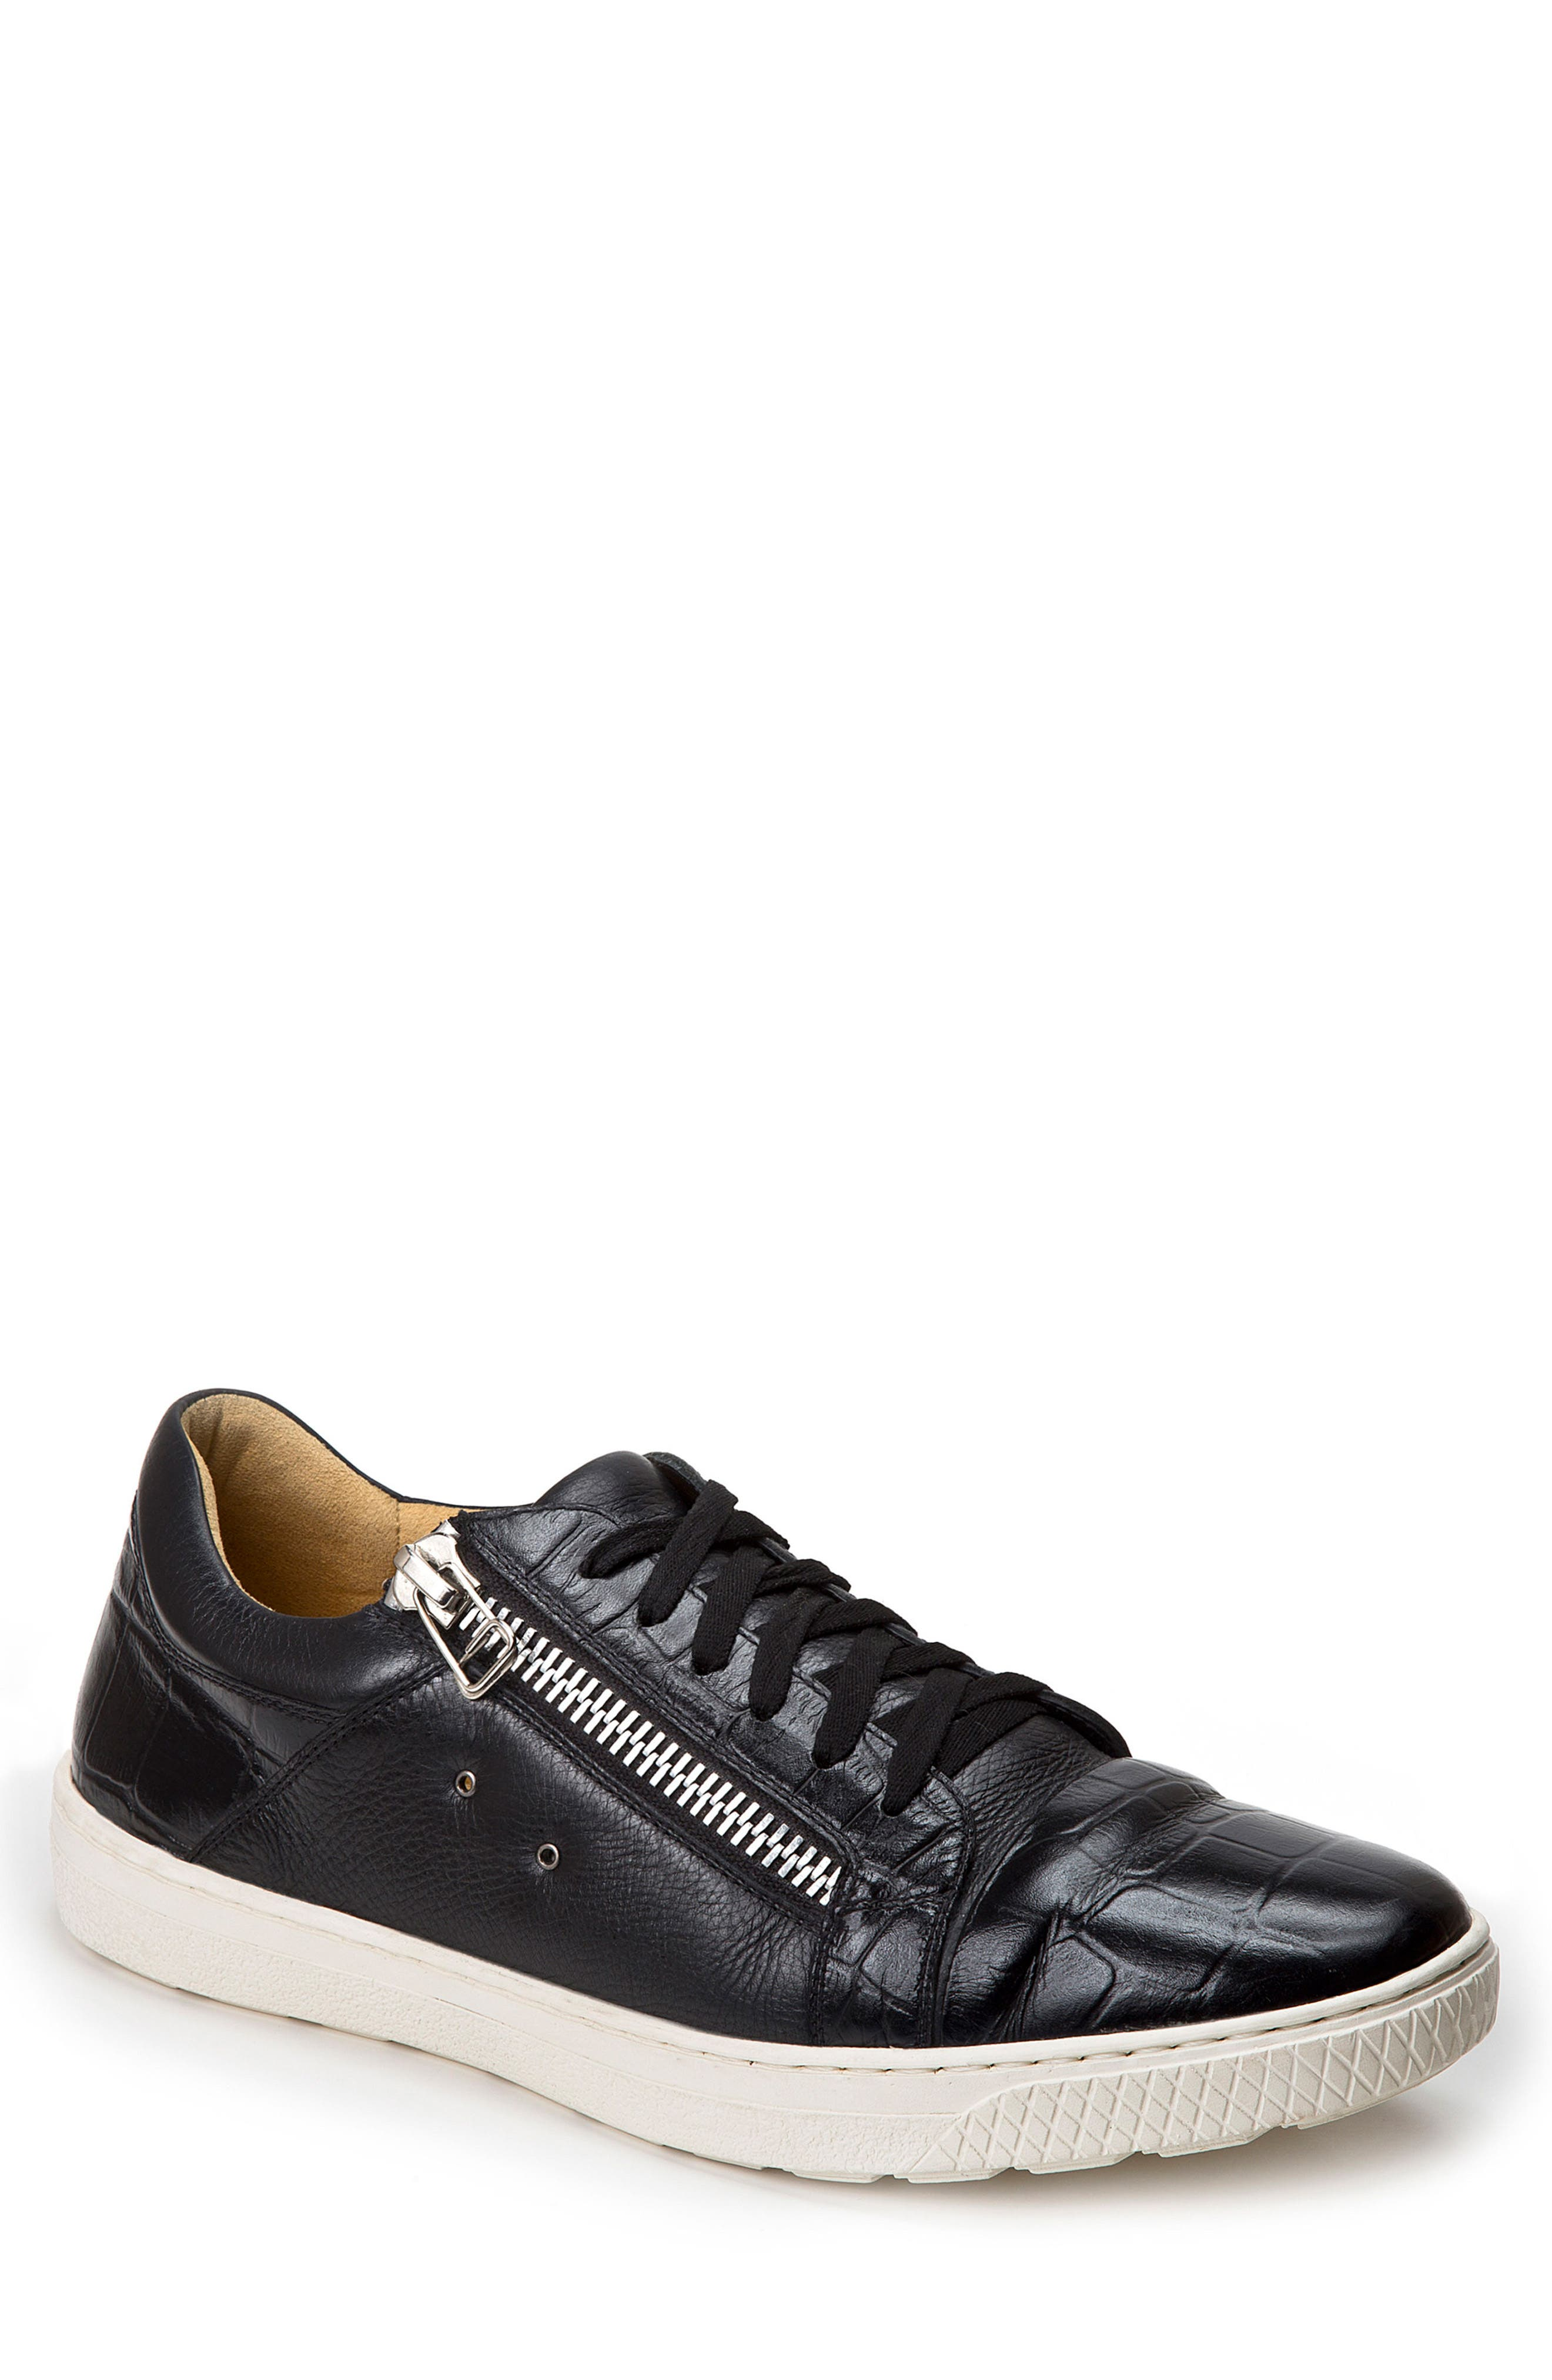 Cassius Side Zip Sneaker,                             Main thumbnail 1, color,